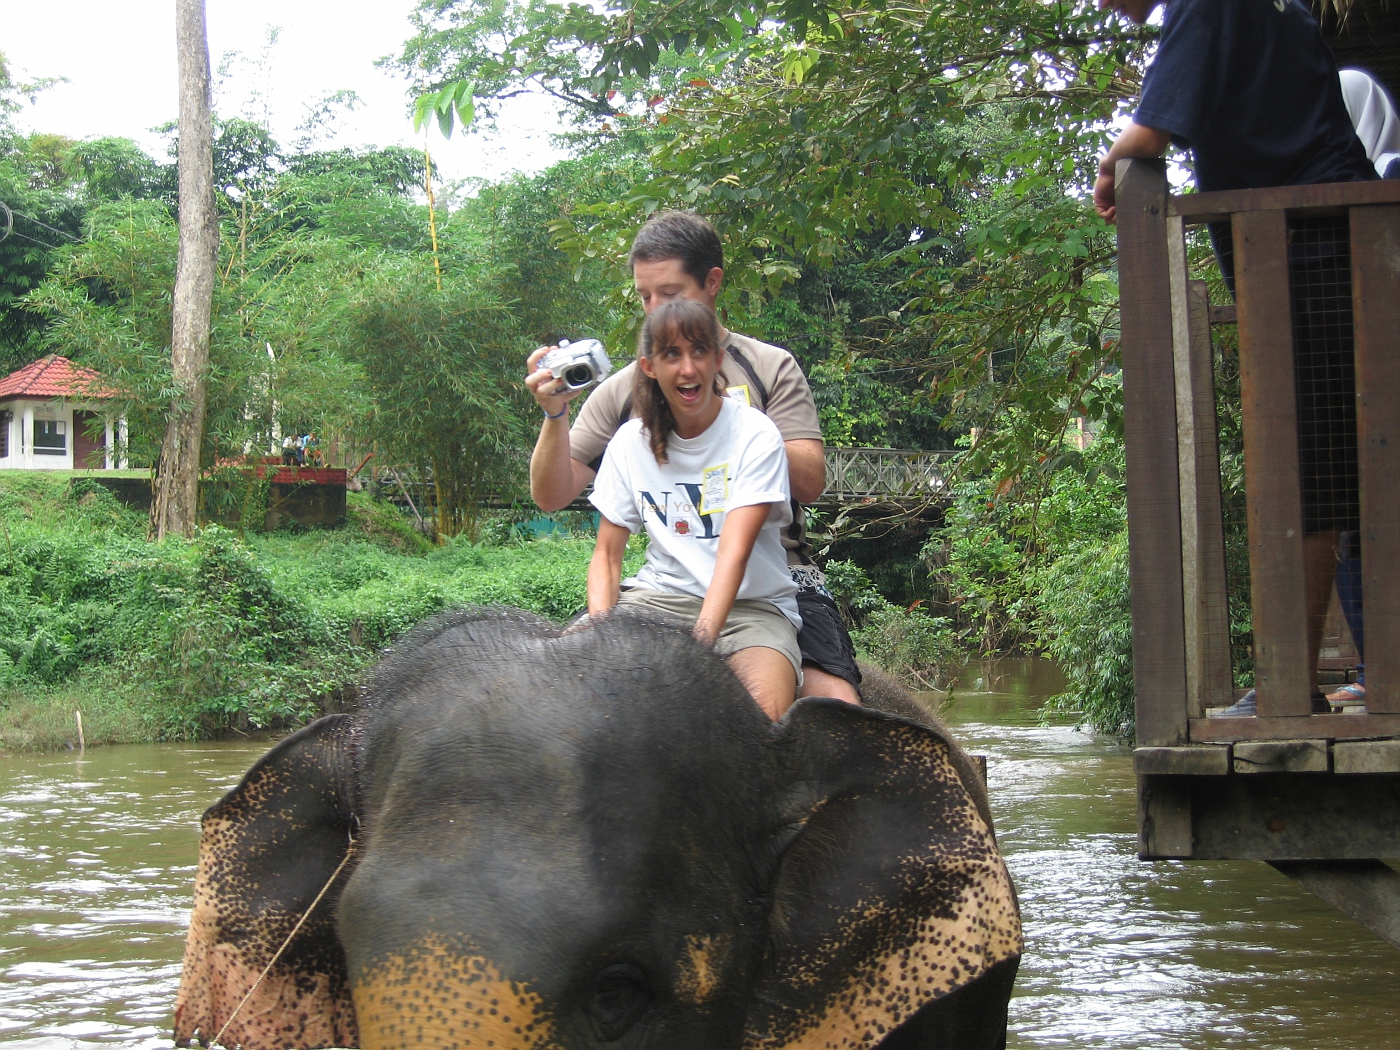 Riding Elephant in River